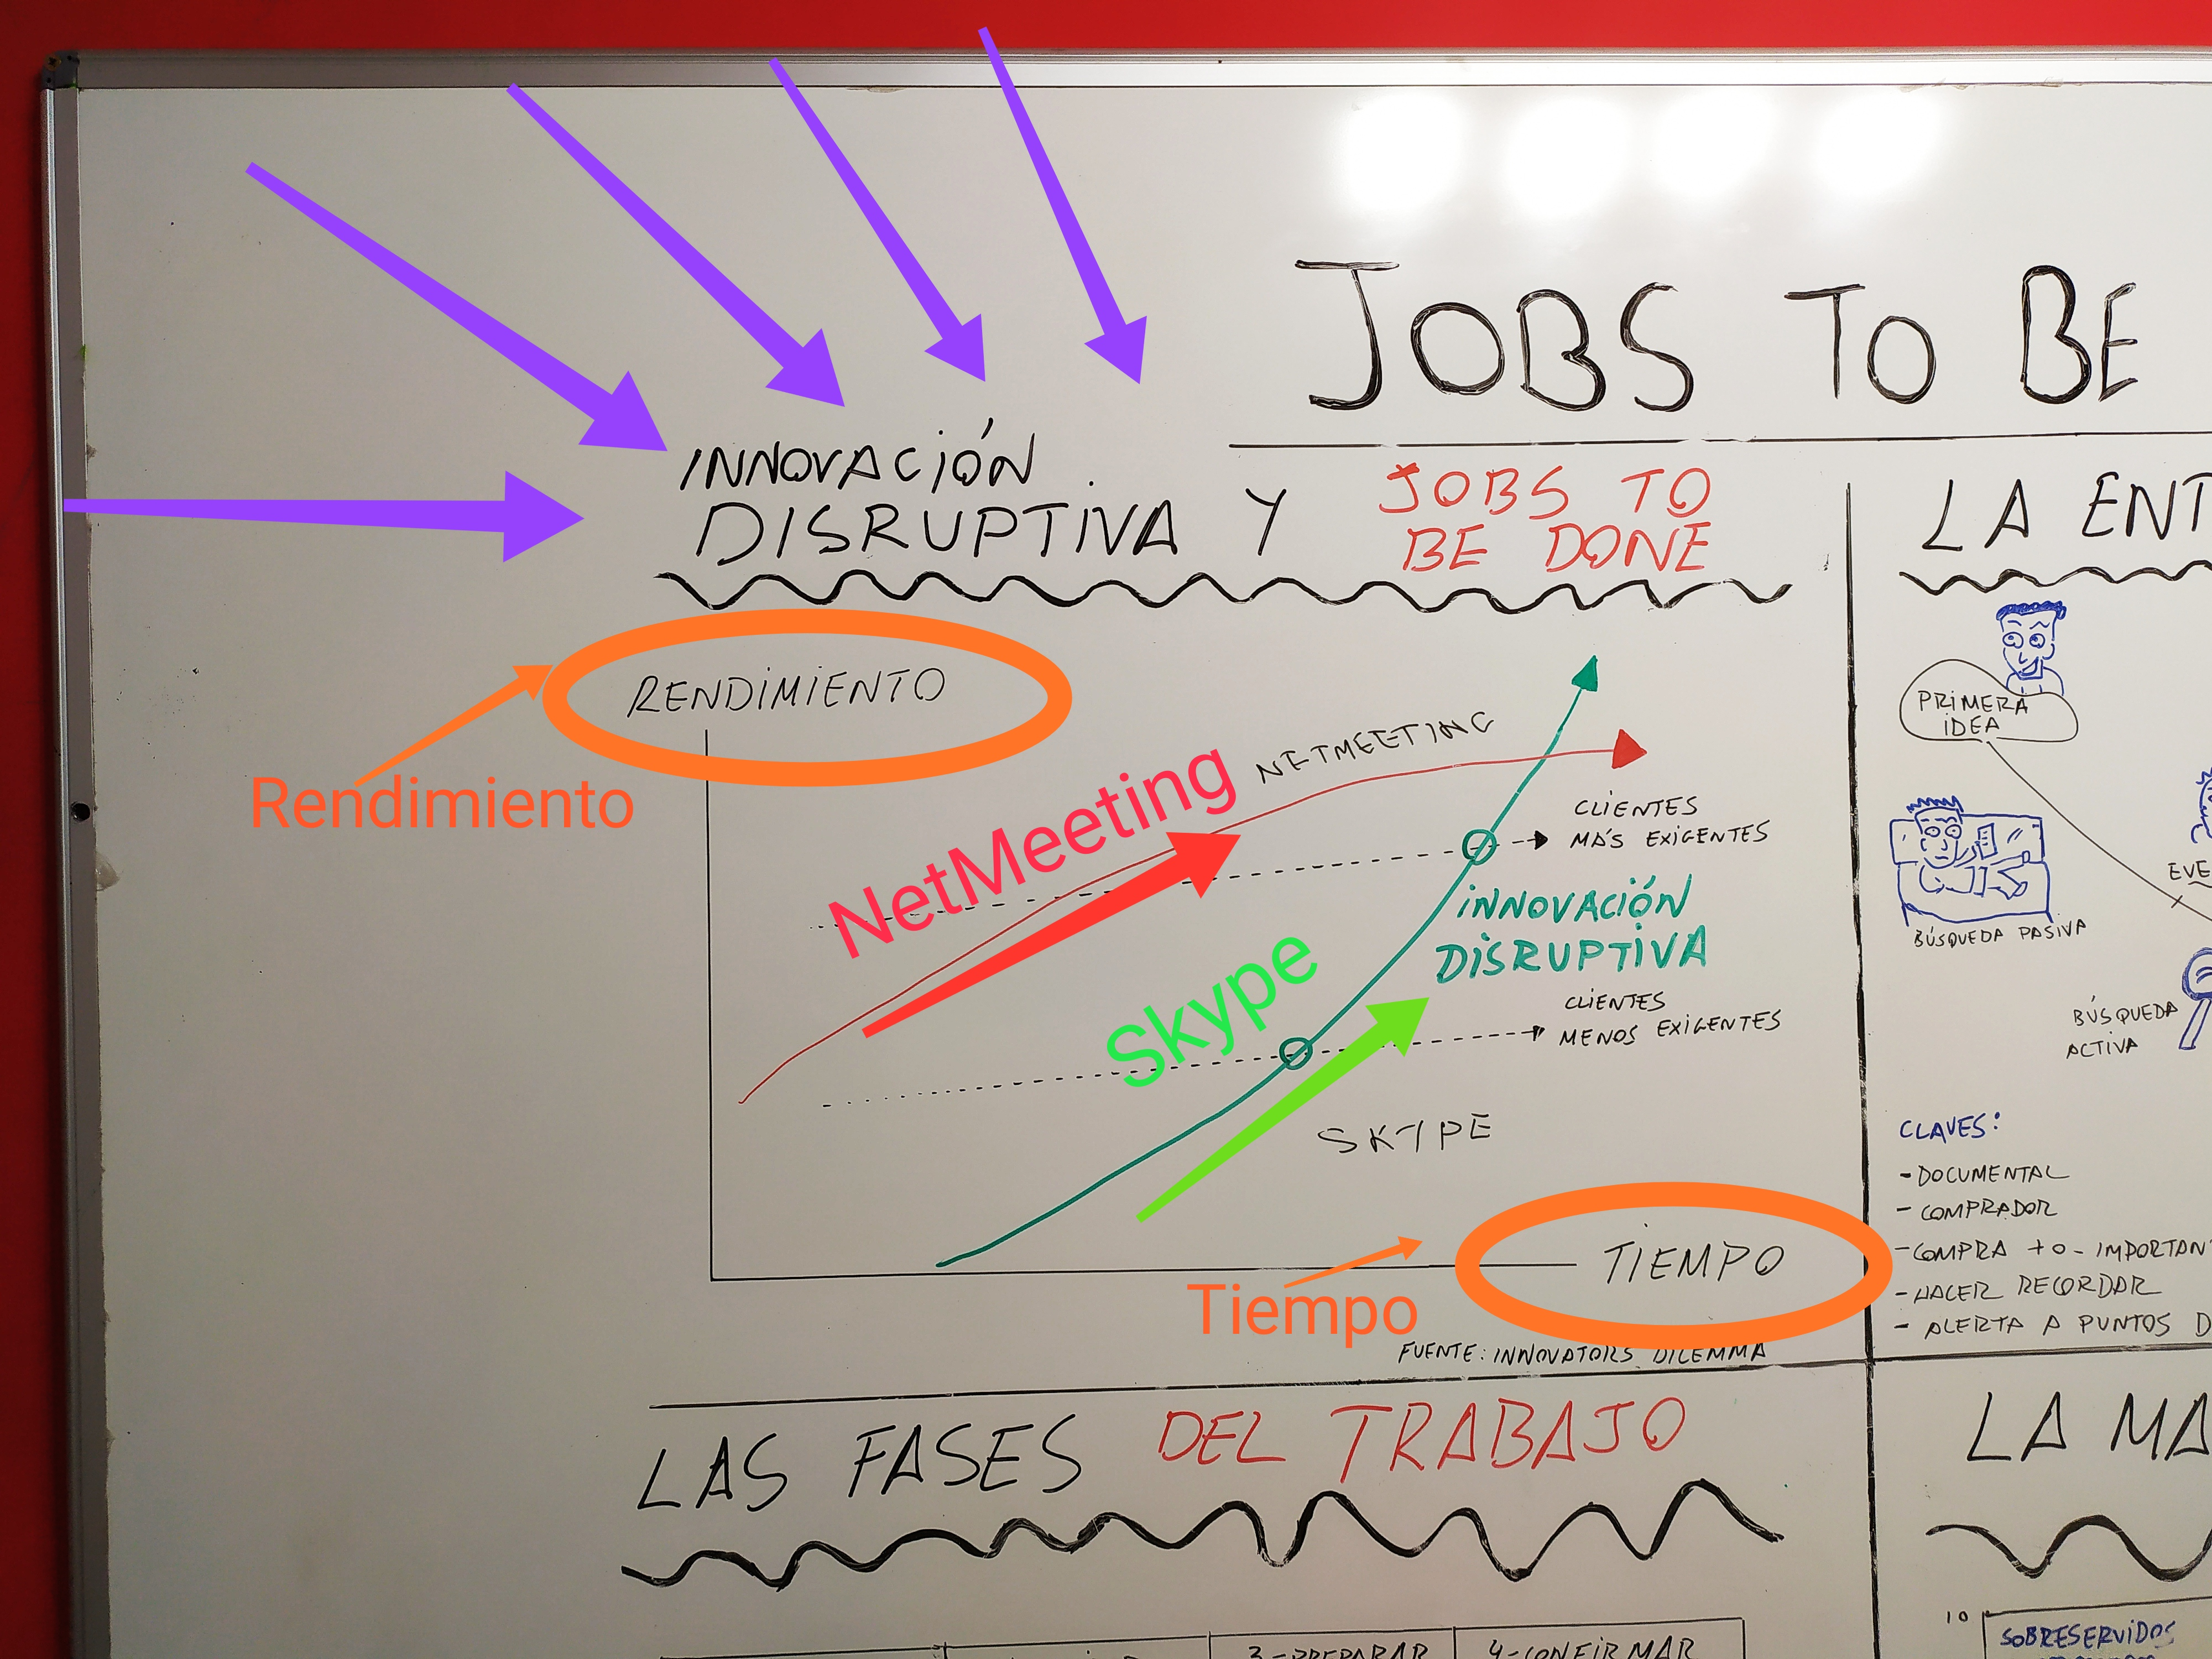 Innovación disruptiva y jobs to be done, caso Skype y NetMeeting.